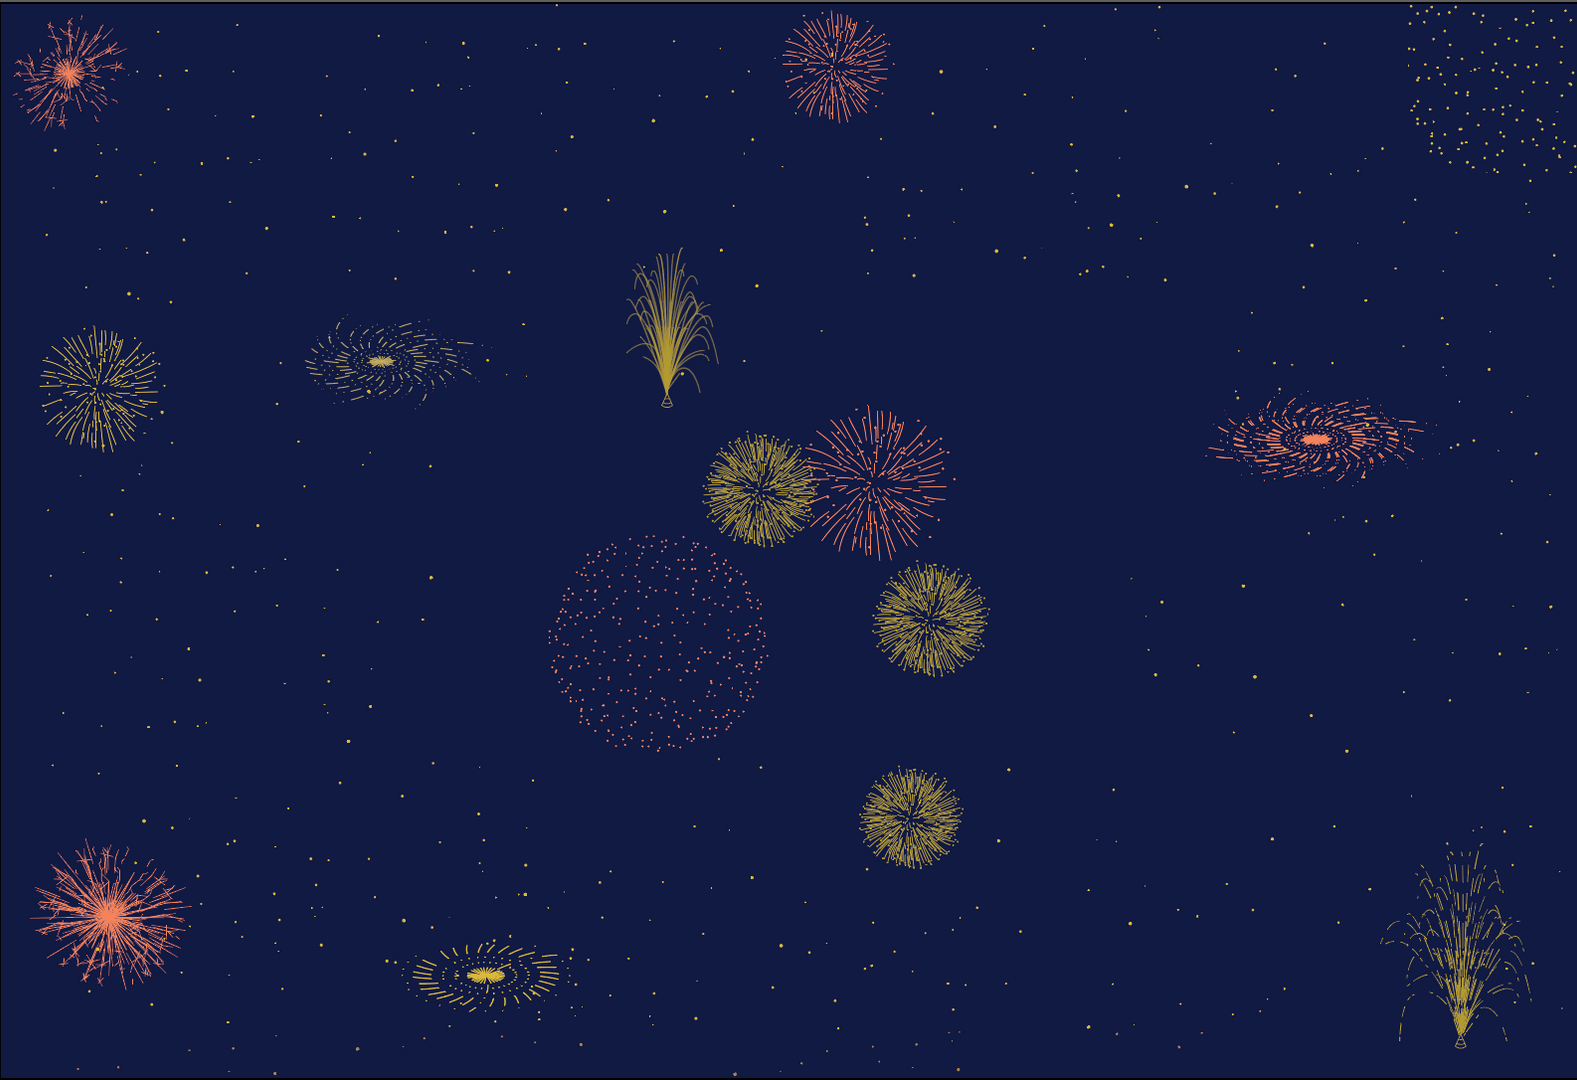 The firework graphics